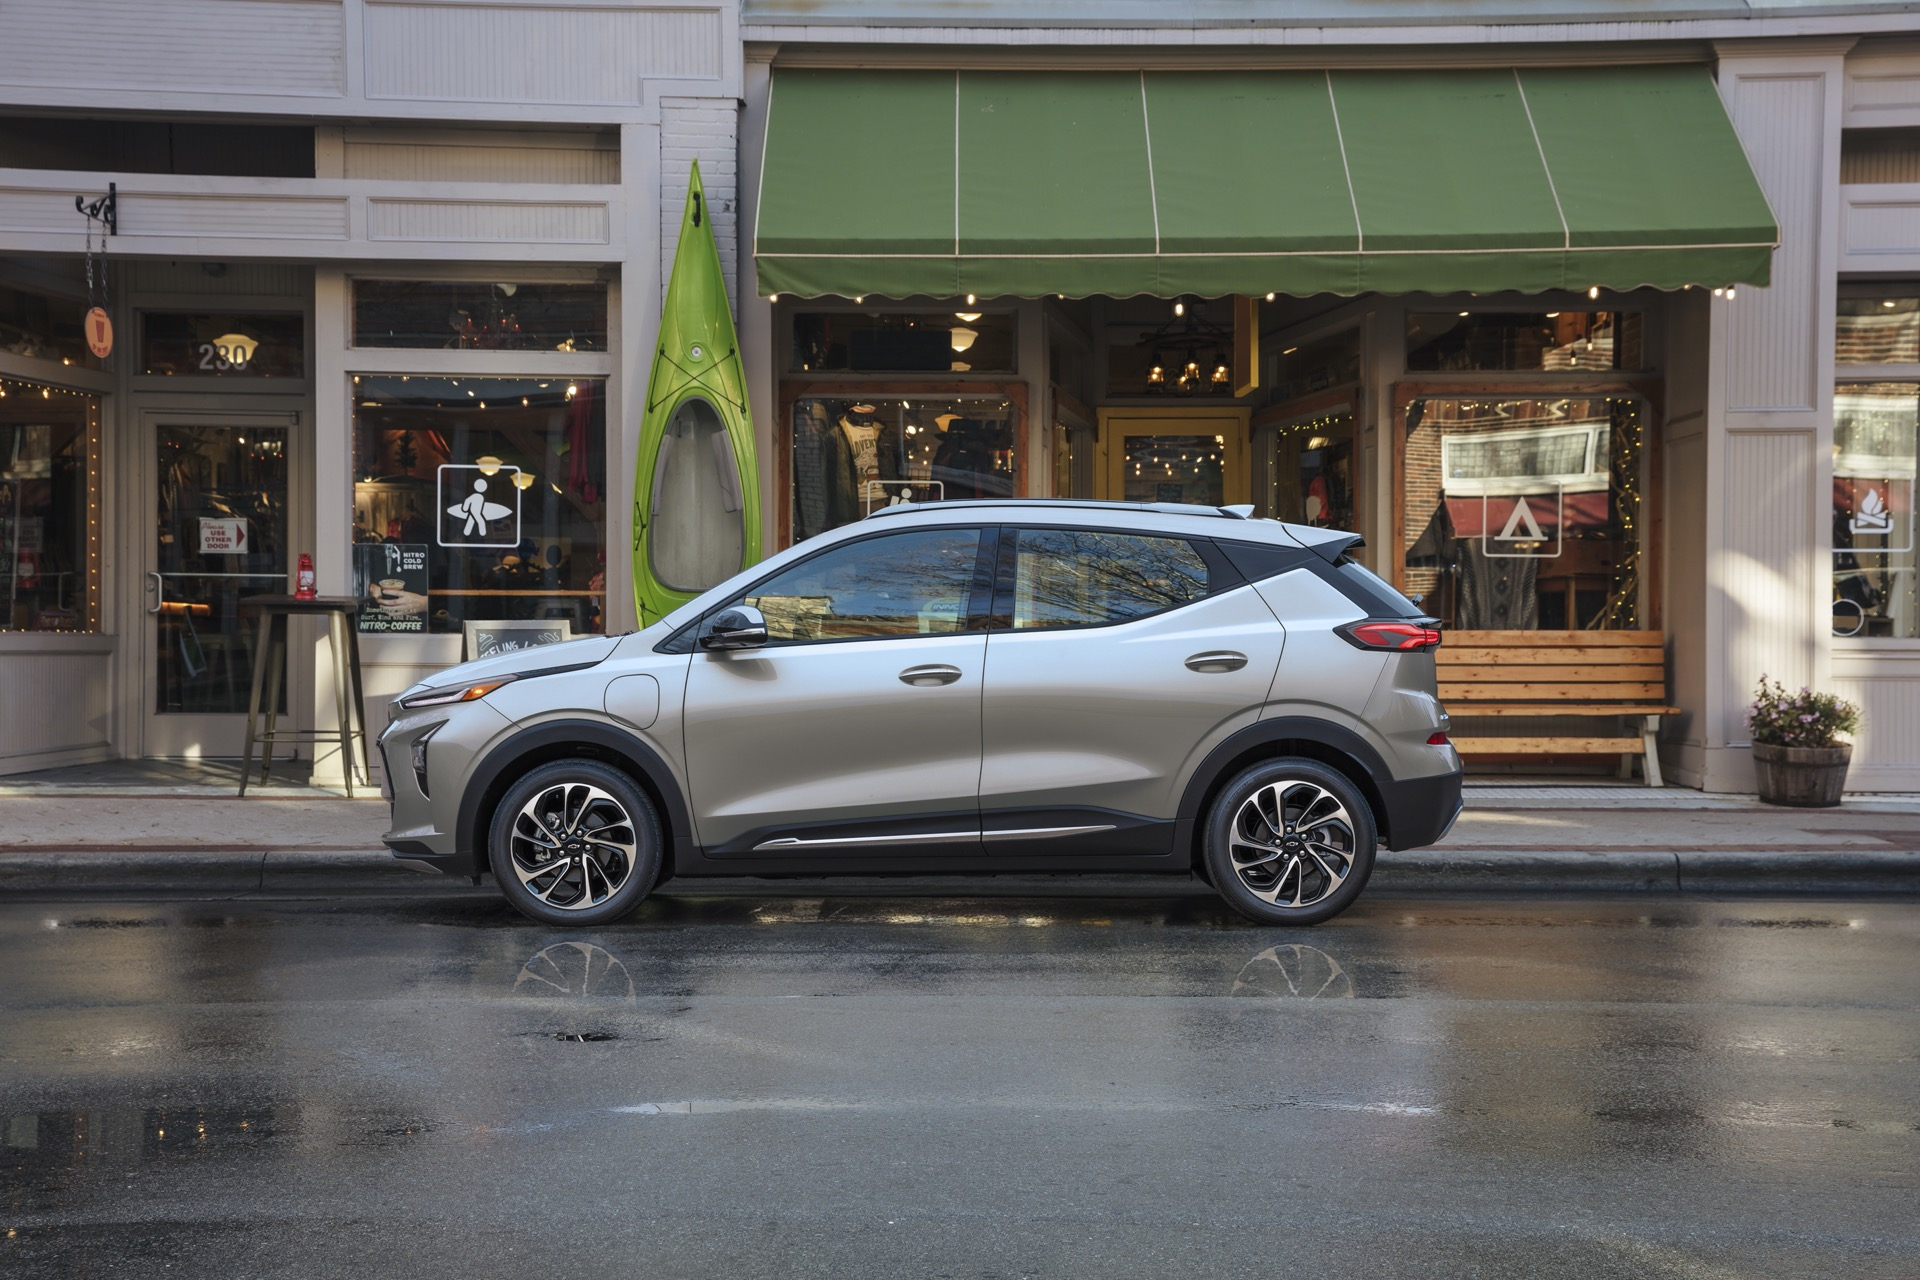 Cadillac Lyriq EV look, Tesla Bot, Chevy Bolt battery recall, electric camper: The Week in Reverse